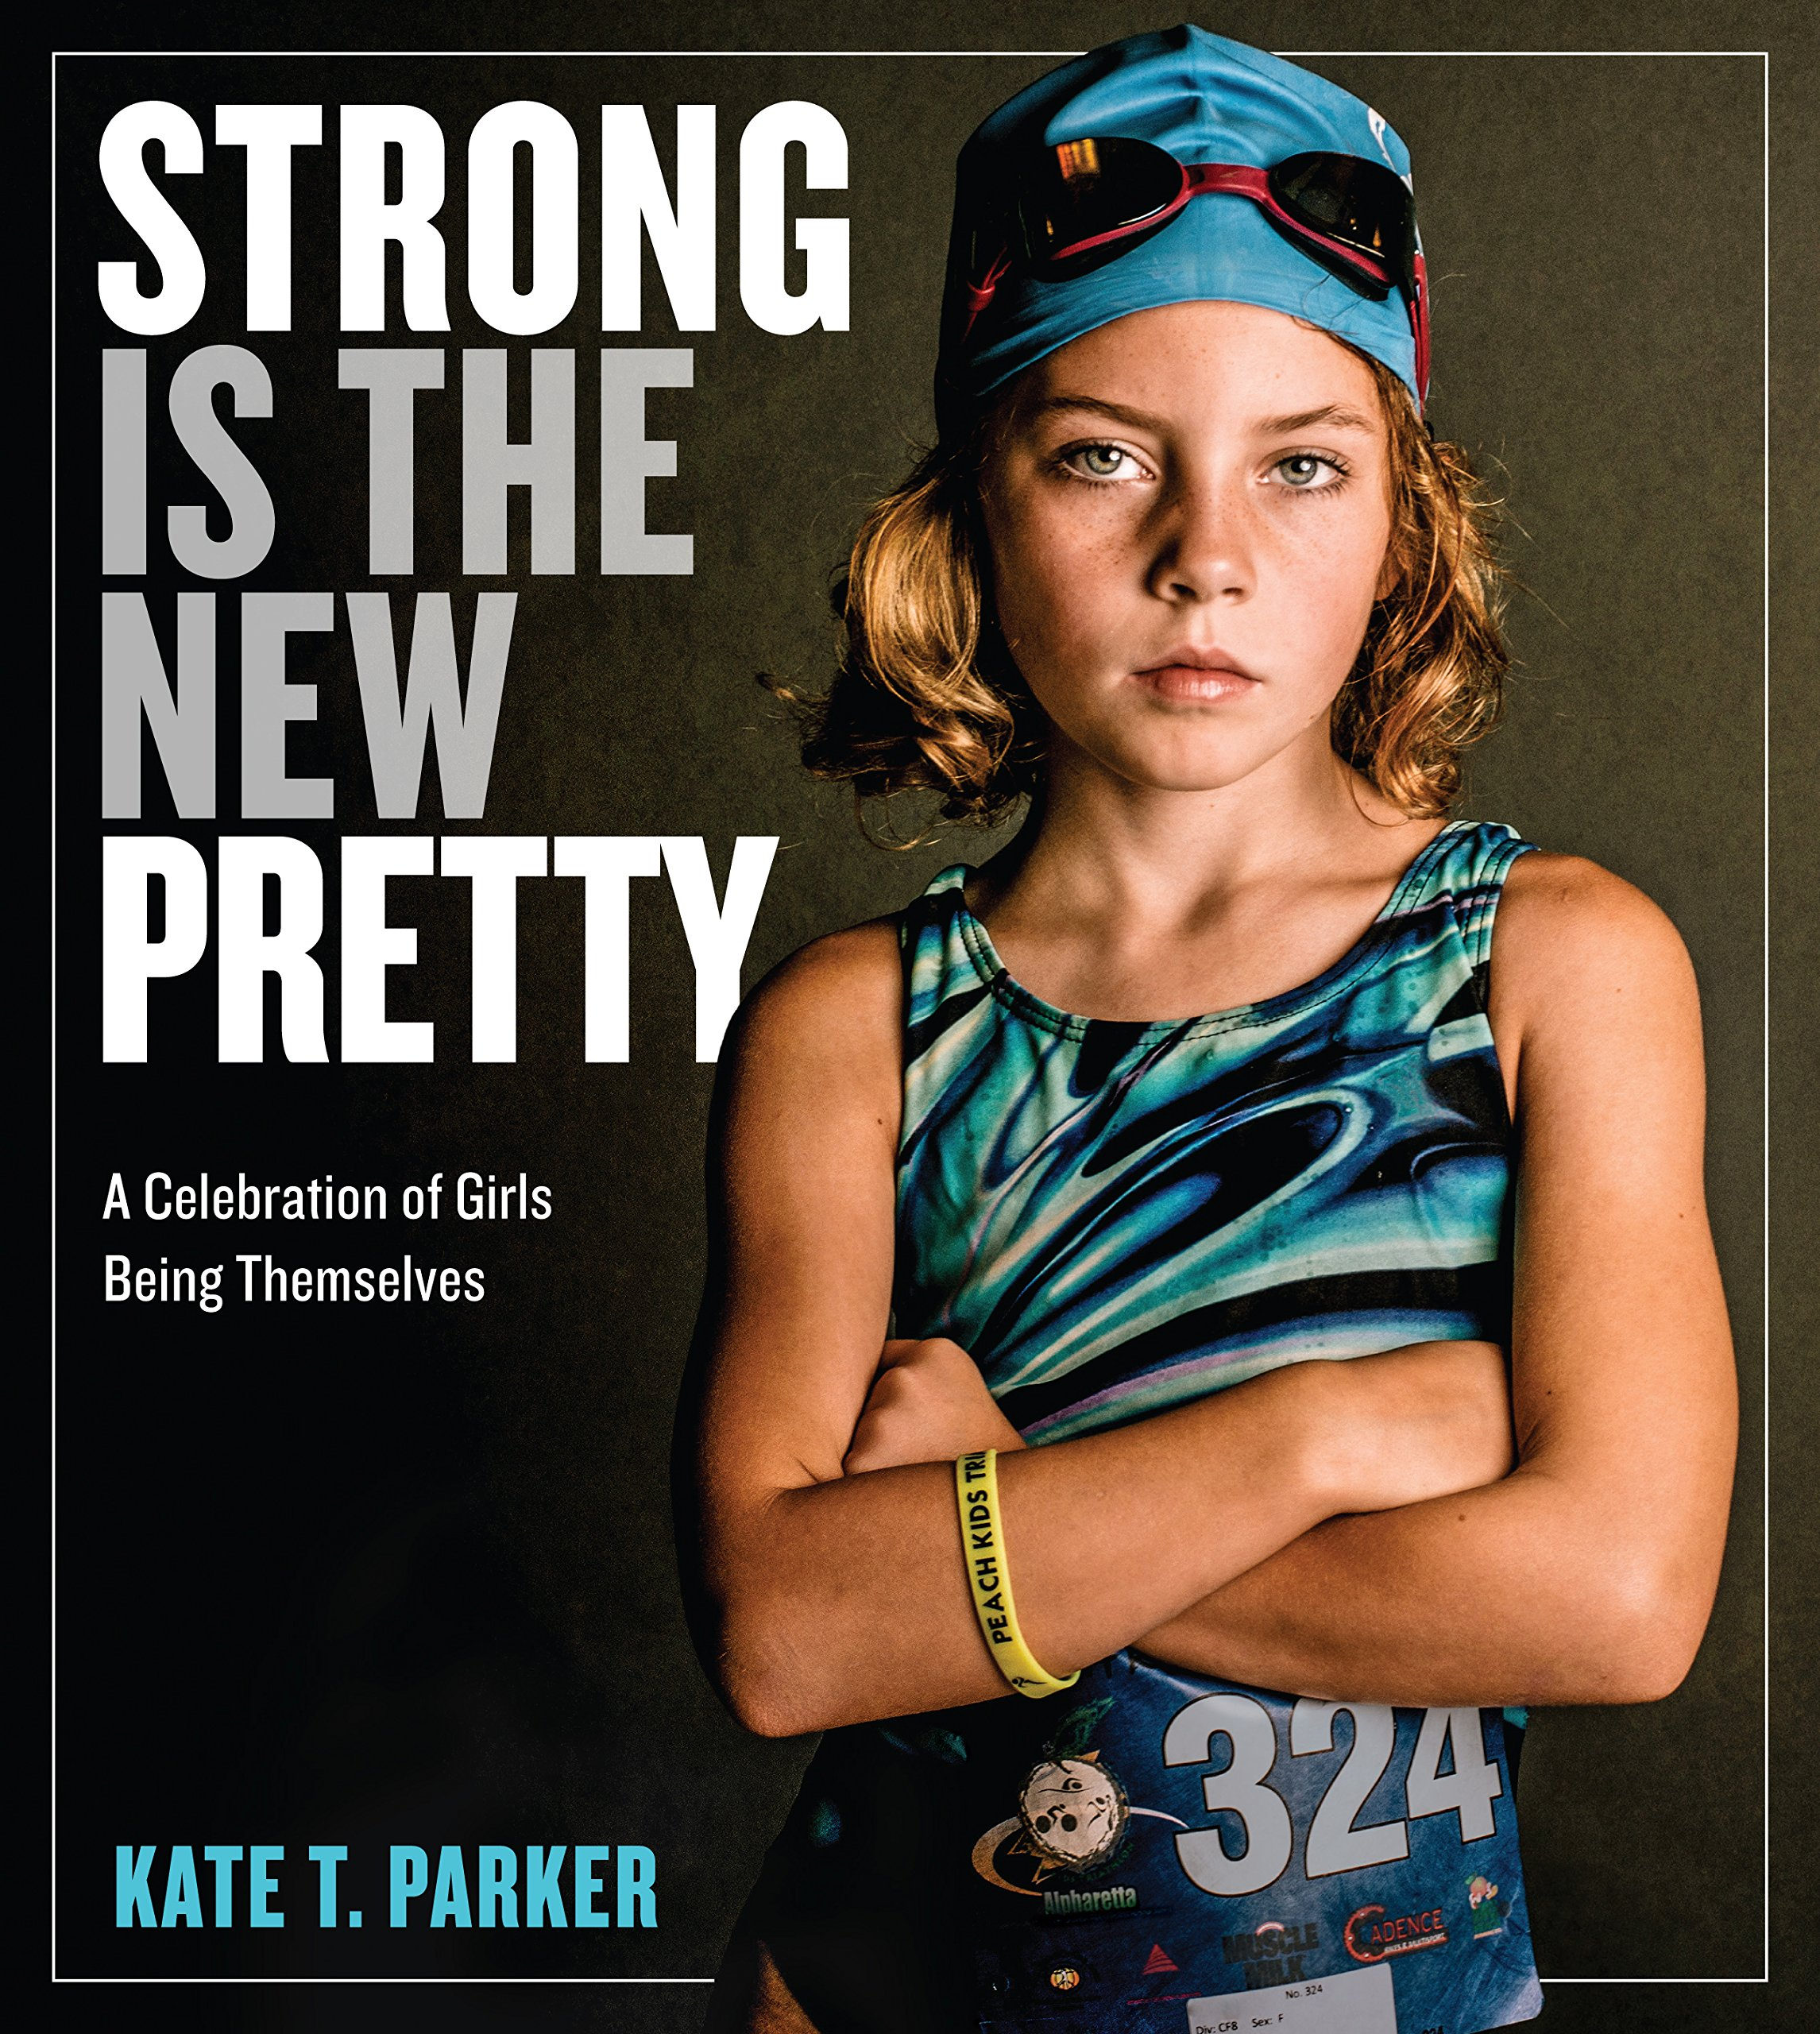 BWW Review: STRONG IS THE NEW PRETTY: A CELEBRATION OF GIRLS BEING THEMSELVES by Kate T. Parker